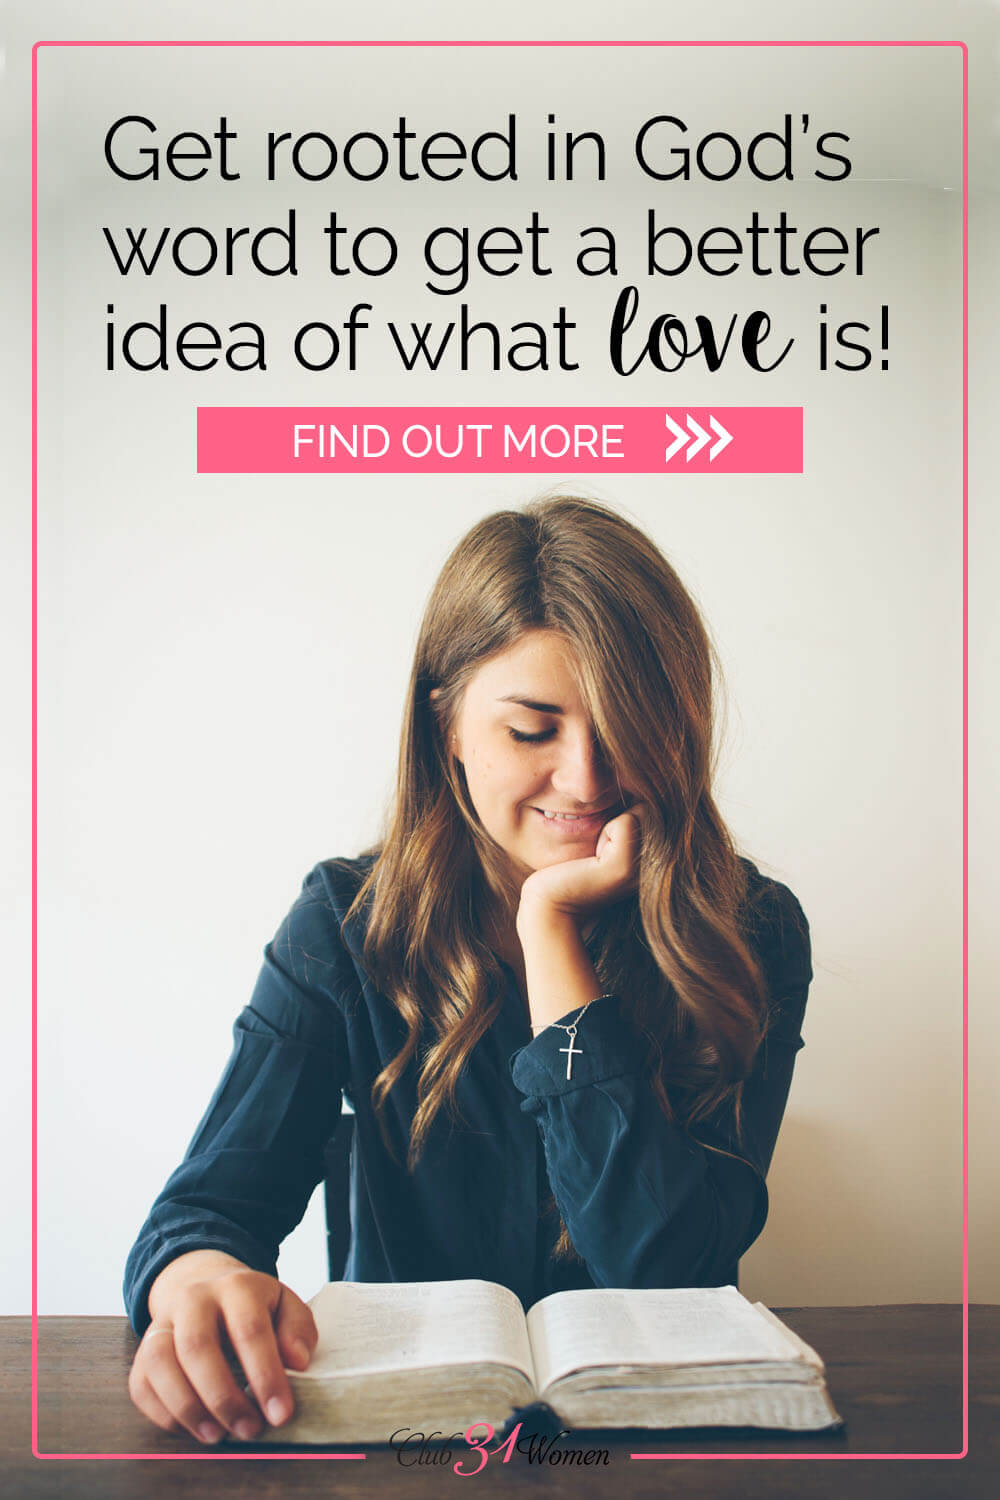 In a world of brokenness, fear, and strong opinions, is love really enough? Can love really cover the pain and the sin all around us? via @Club31Women